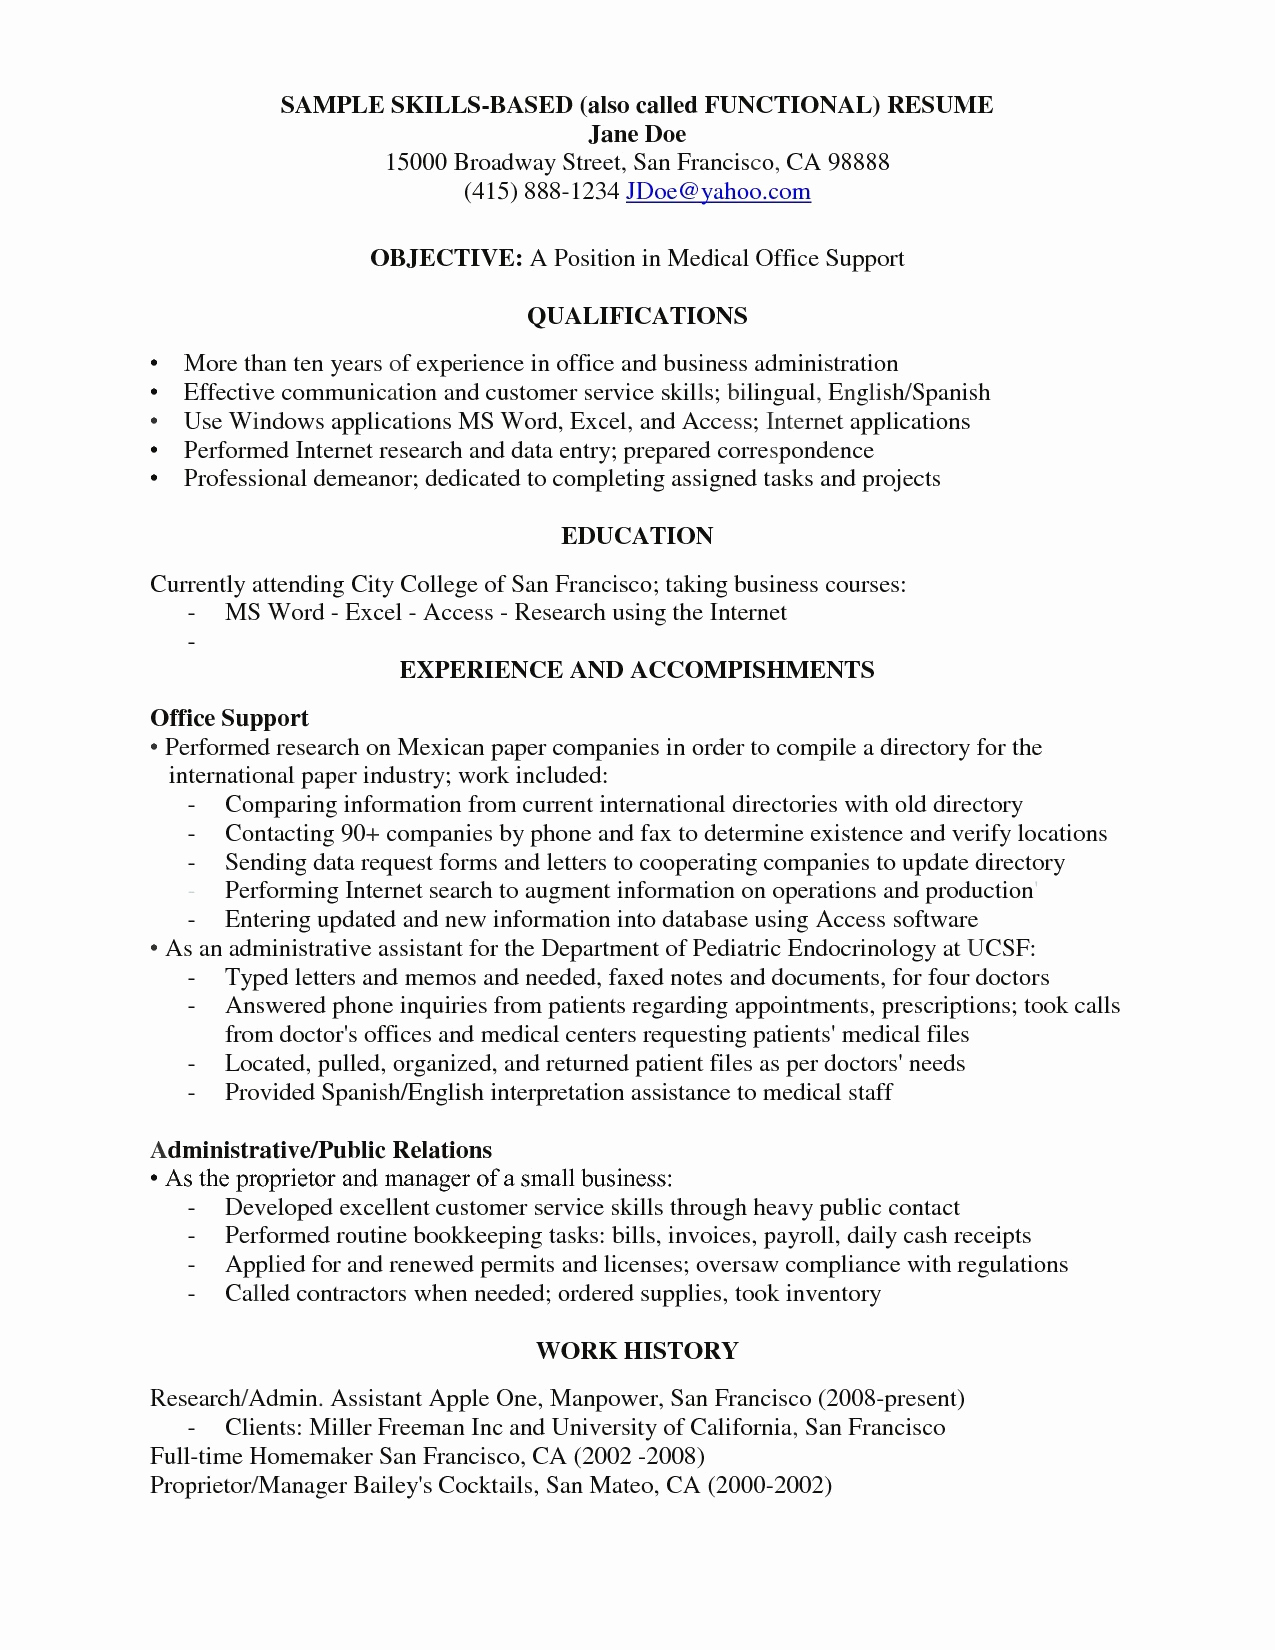 Paralegal Job Description Resume - Sales assistant Job Description Resume Free Resume Sample Fresh